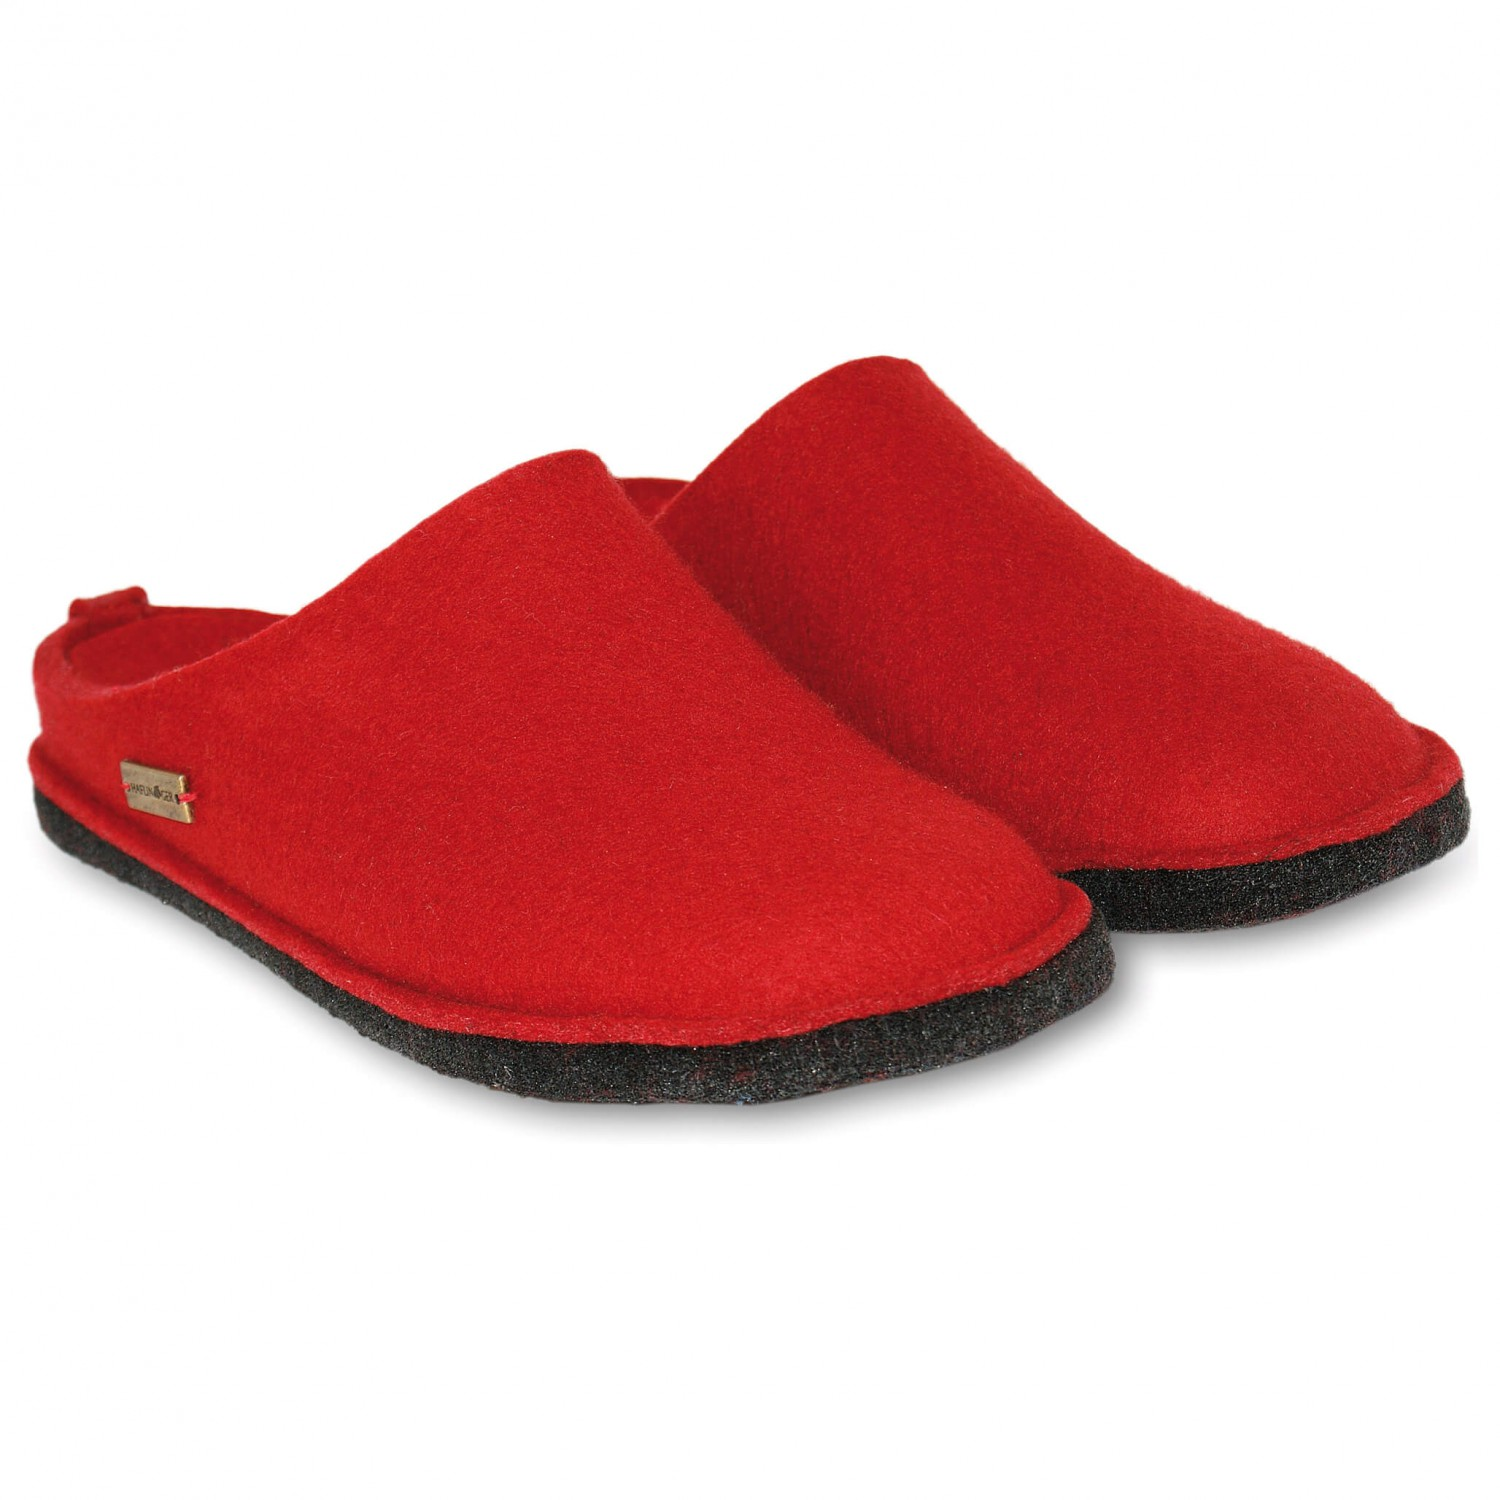 Where Can I Buy Haflinger Shoes